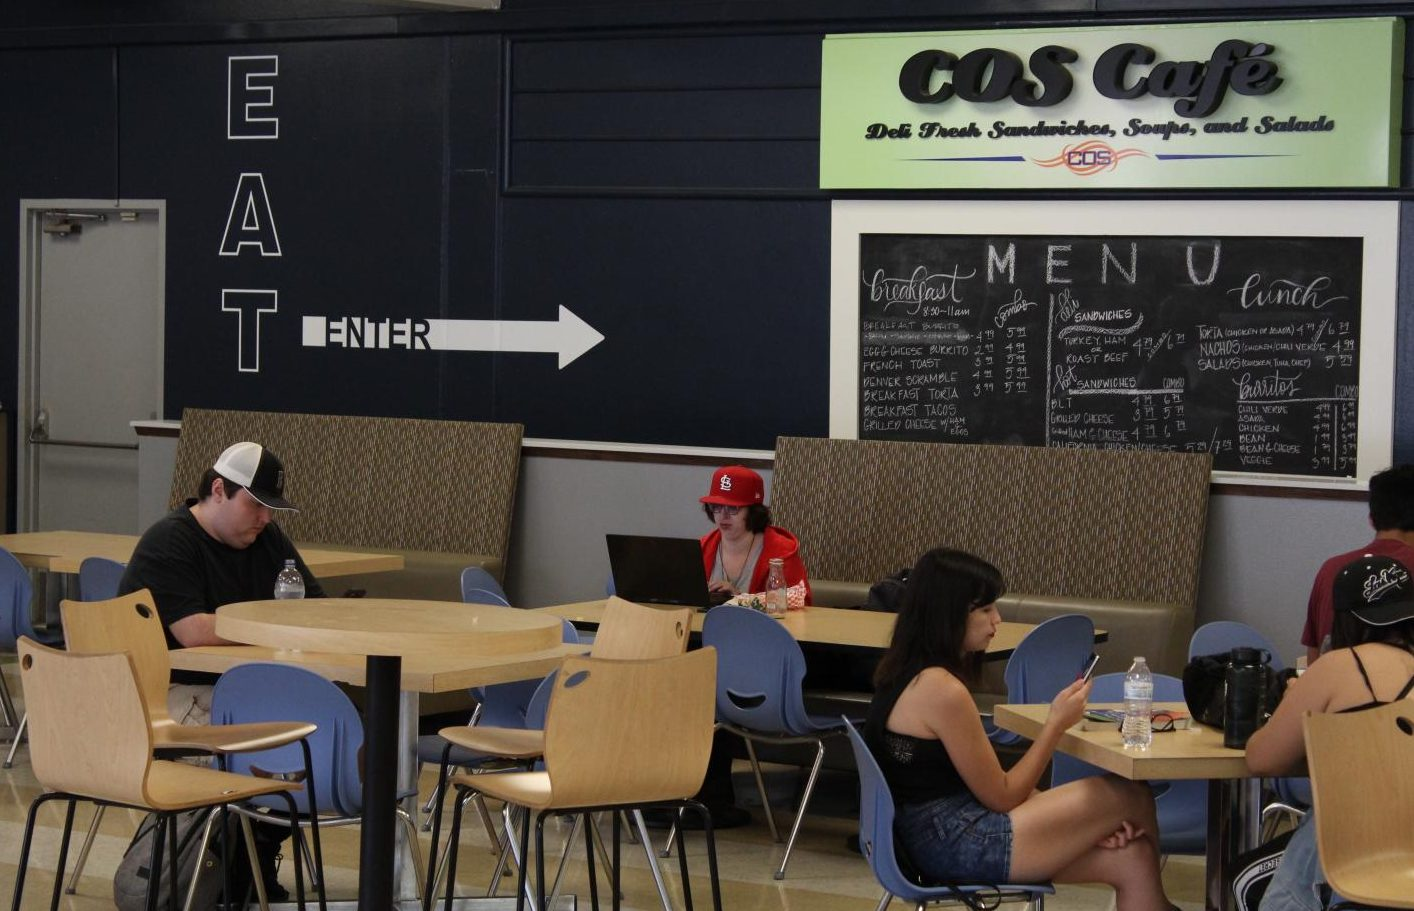 COS Cafe offers a food and rest area on the Visalia campus; however the room can get crowded during peak times. COS Cafe hopes to ease the crowds with online ordering.